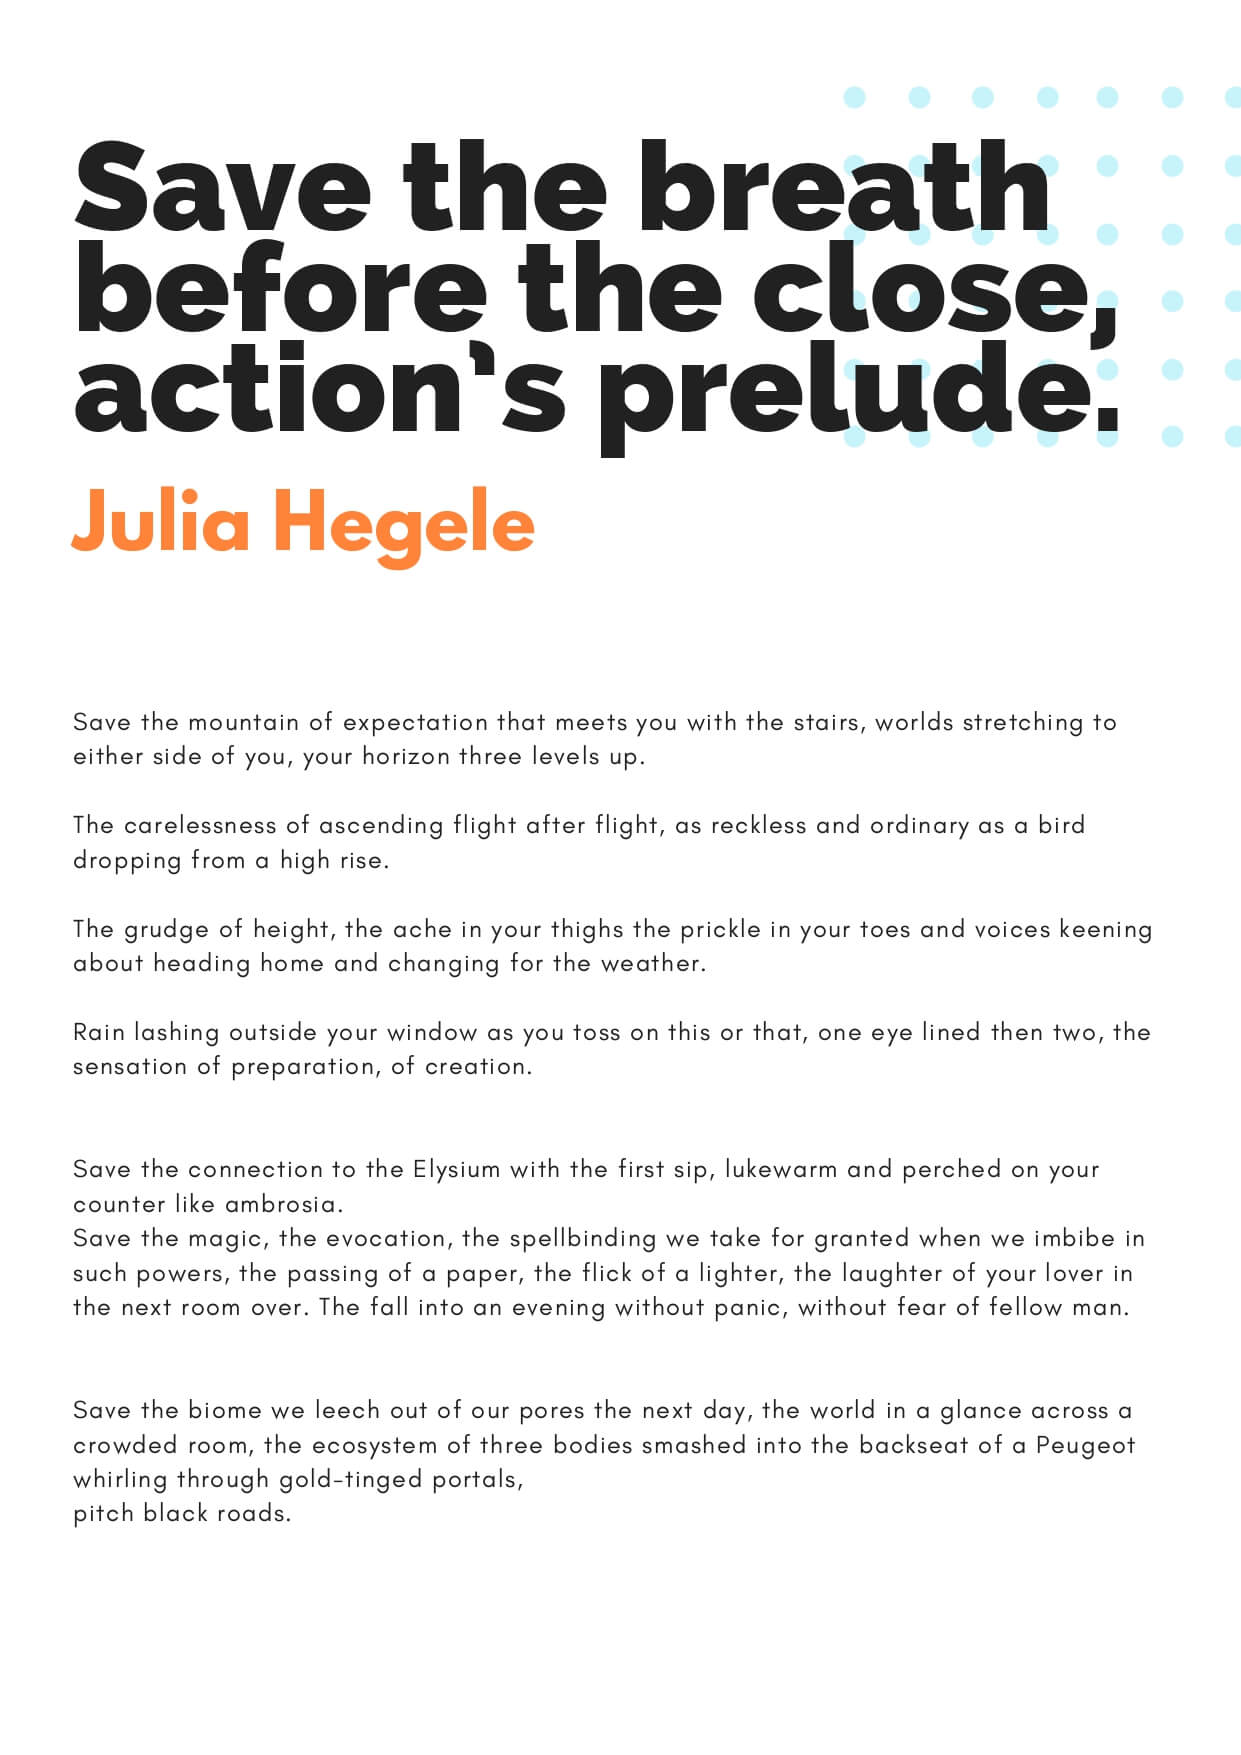 How to Change the World zine - Save the breath by Julia Hegele (page 1)